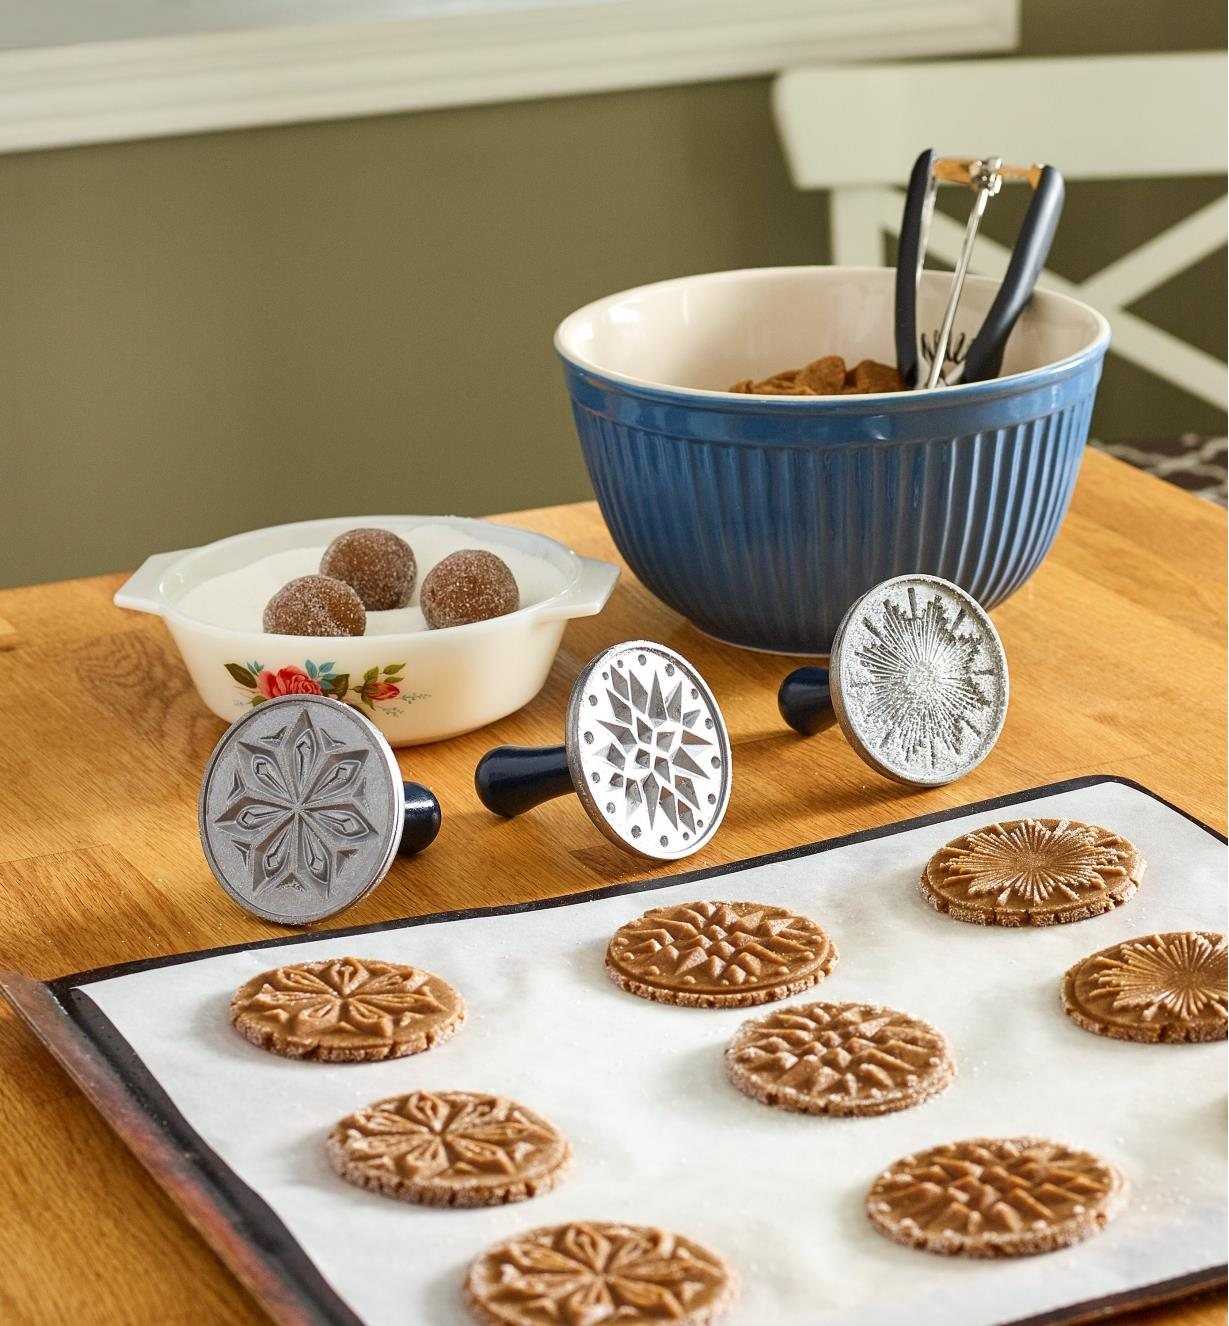 Set of three cookie stamps sitting on a counter next to a tray of cookies that have been stamped